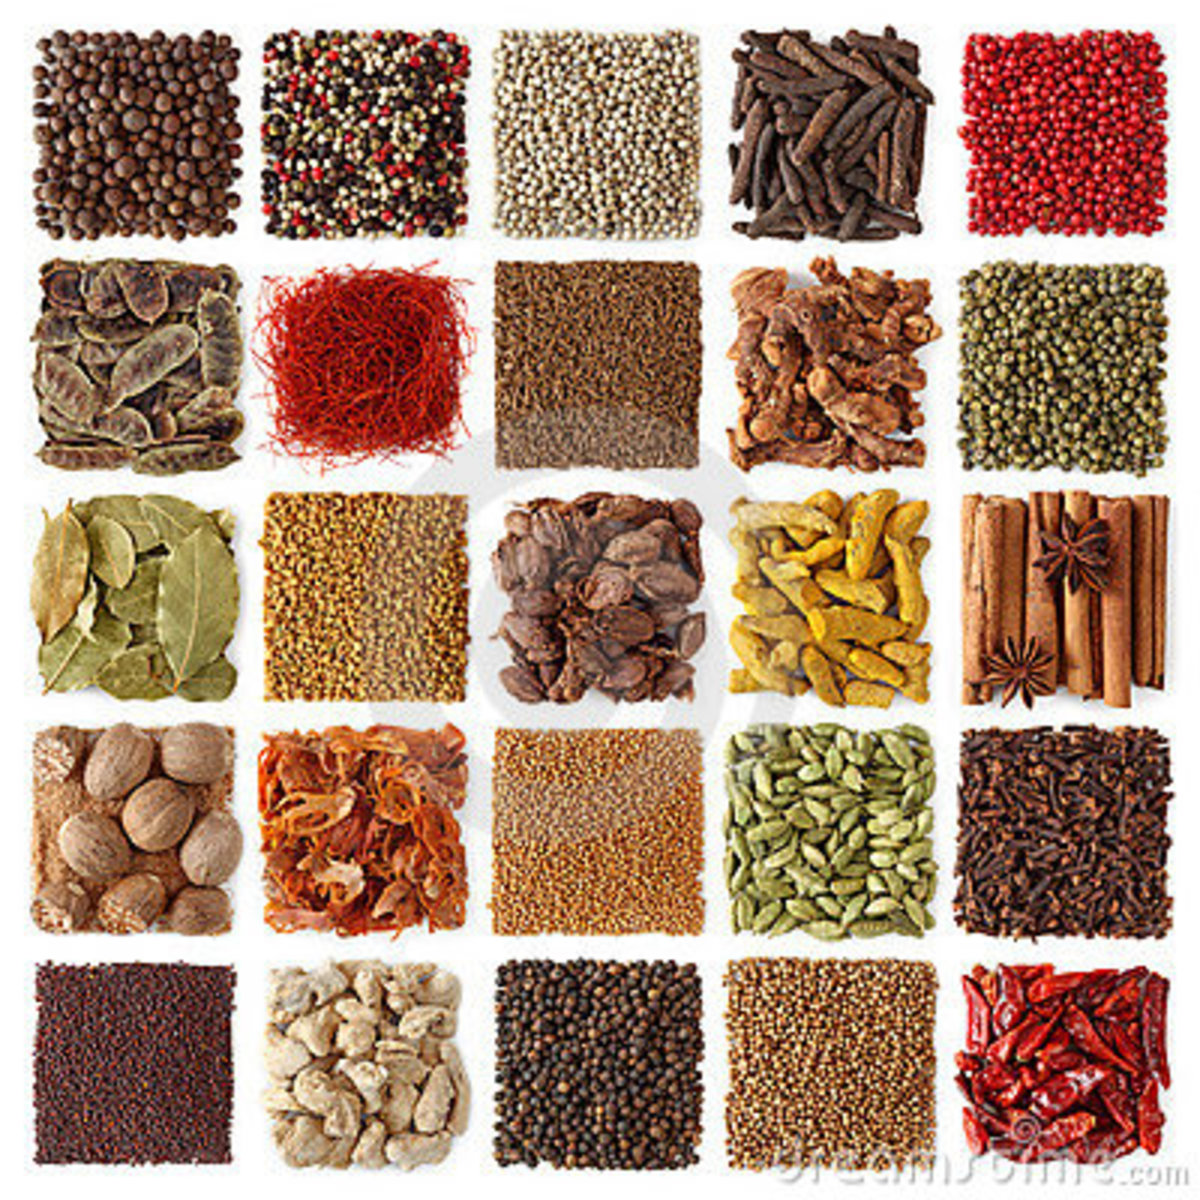 6 Super Spices That Will Keep The Doctor Away!